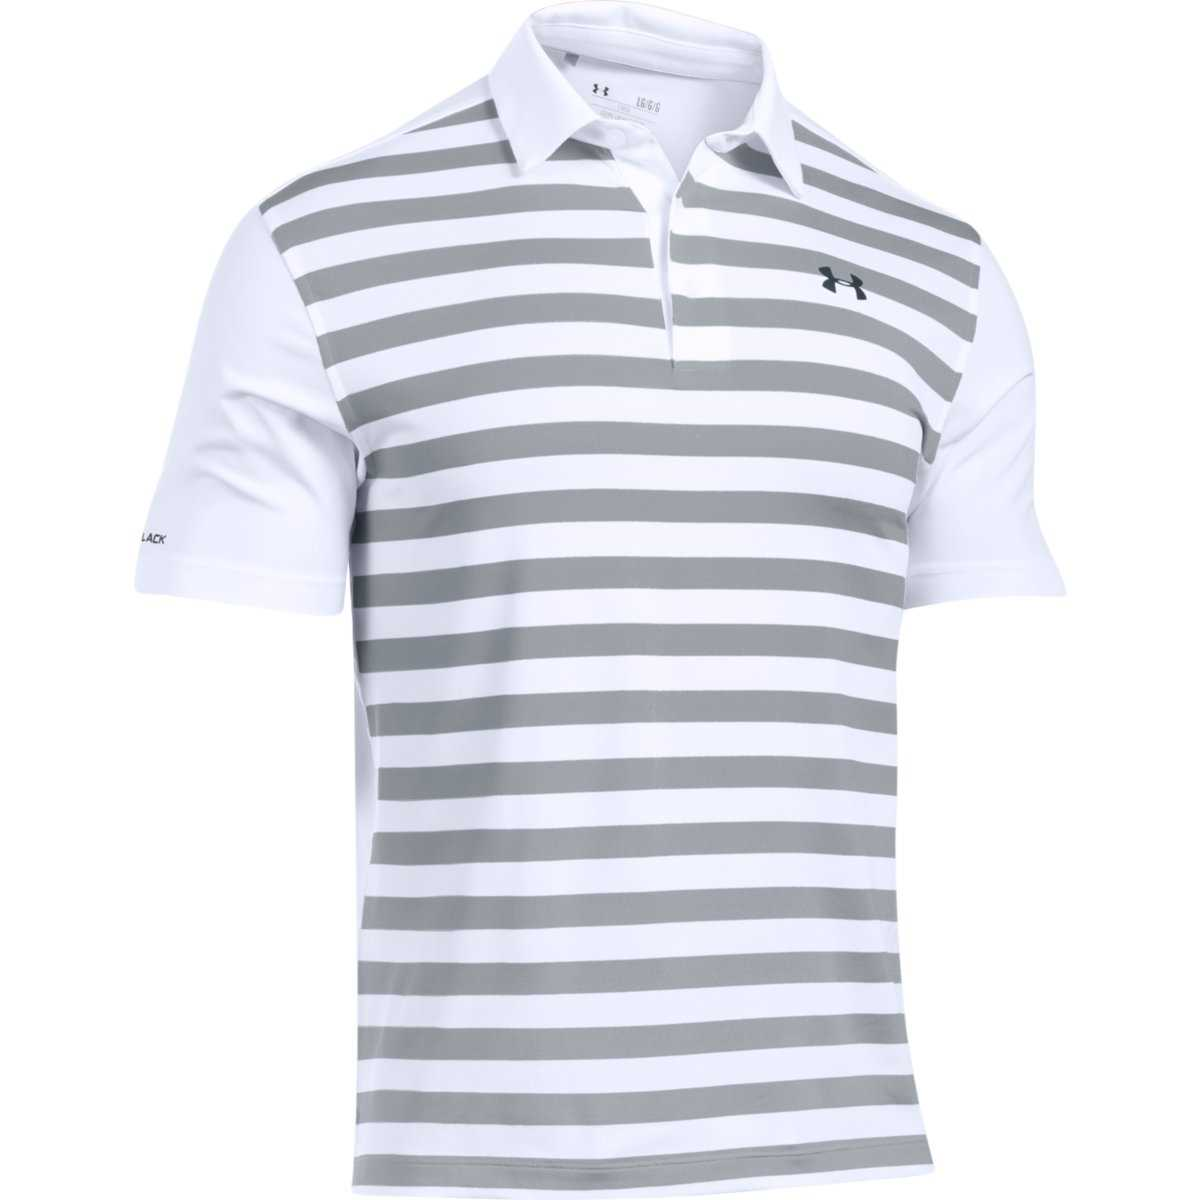 e91af038 Under Armour Men's Coldblack Tempo Polo - White/Overcast Gray